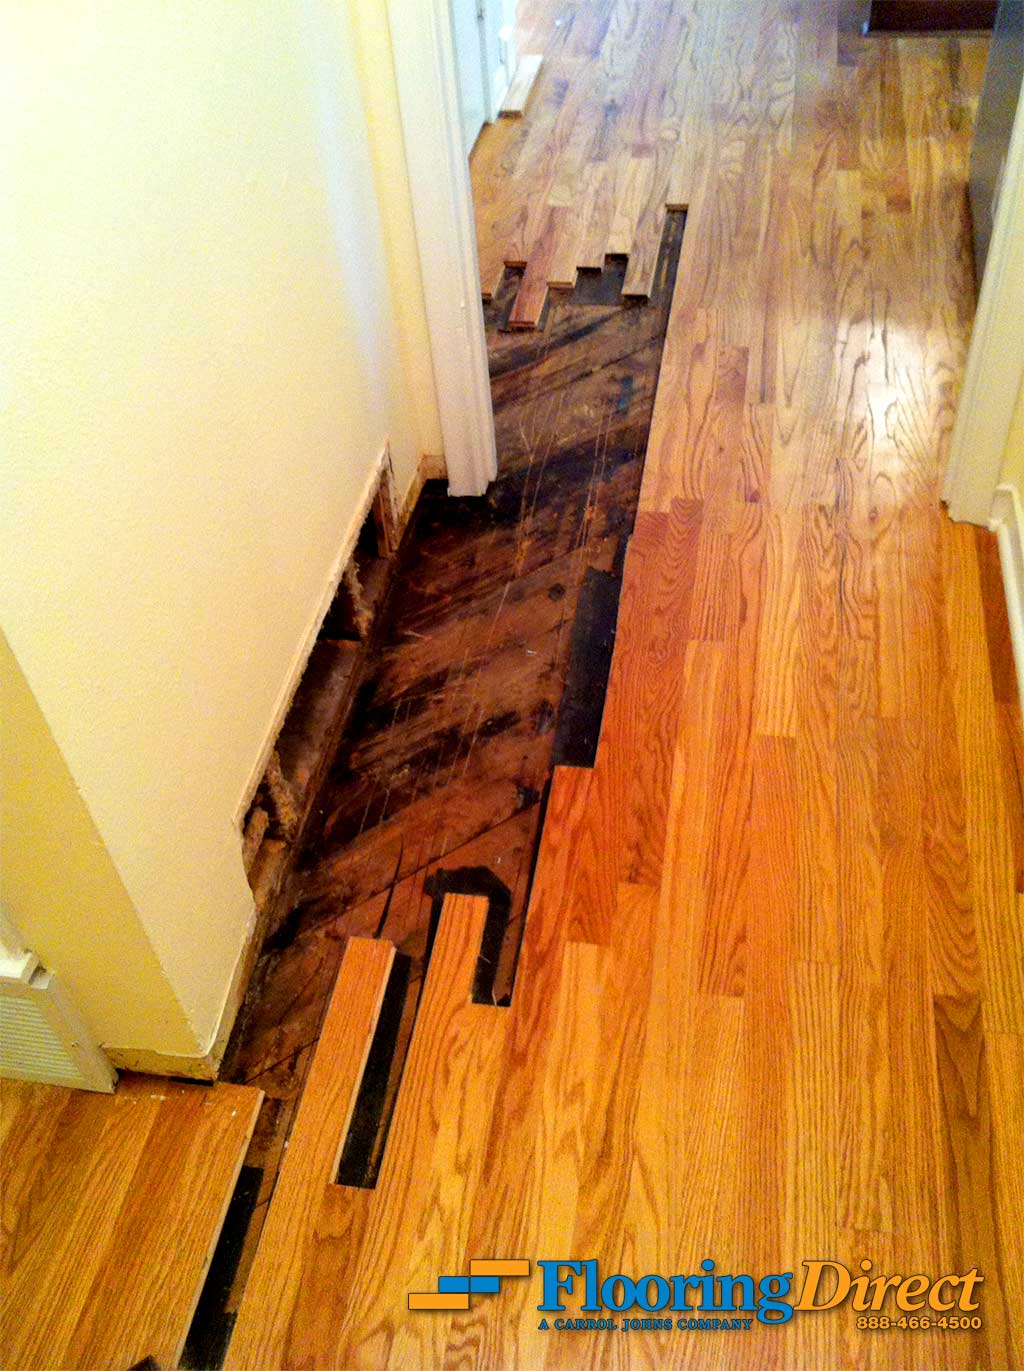 Water Damage: Before - This picture was generously provided to us by the customer of their water-damaged hardwood floor.